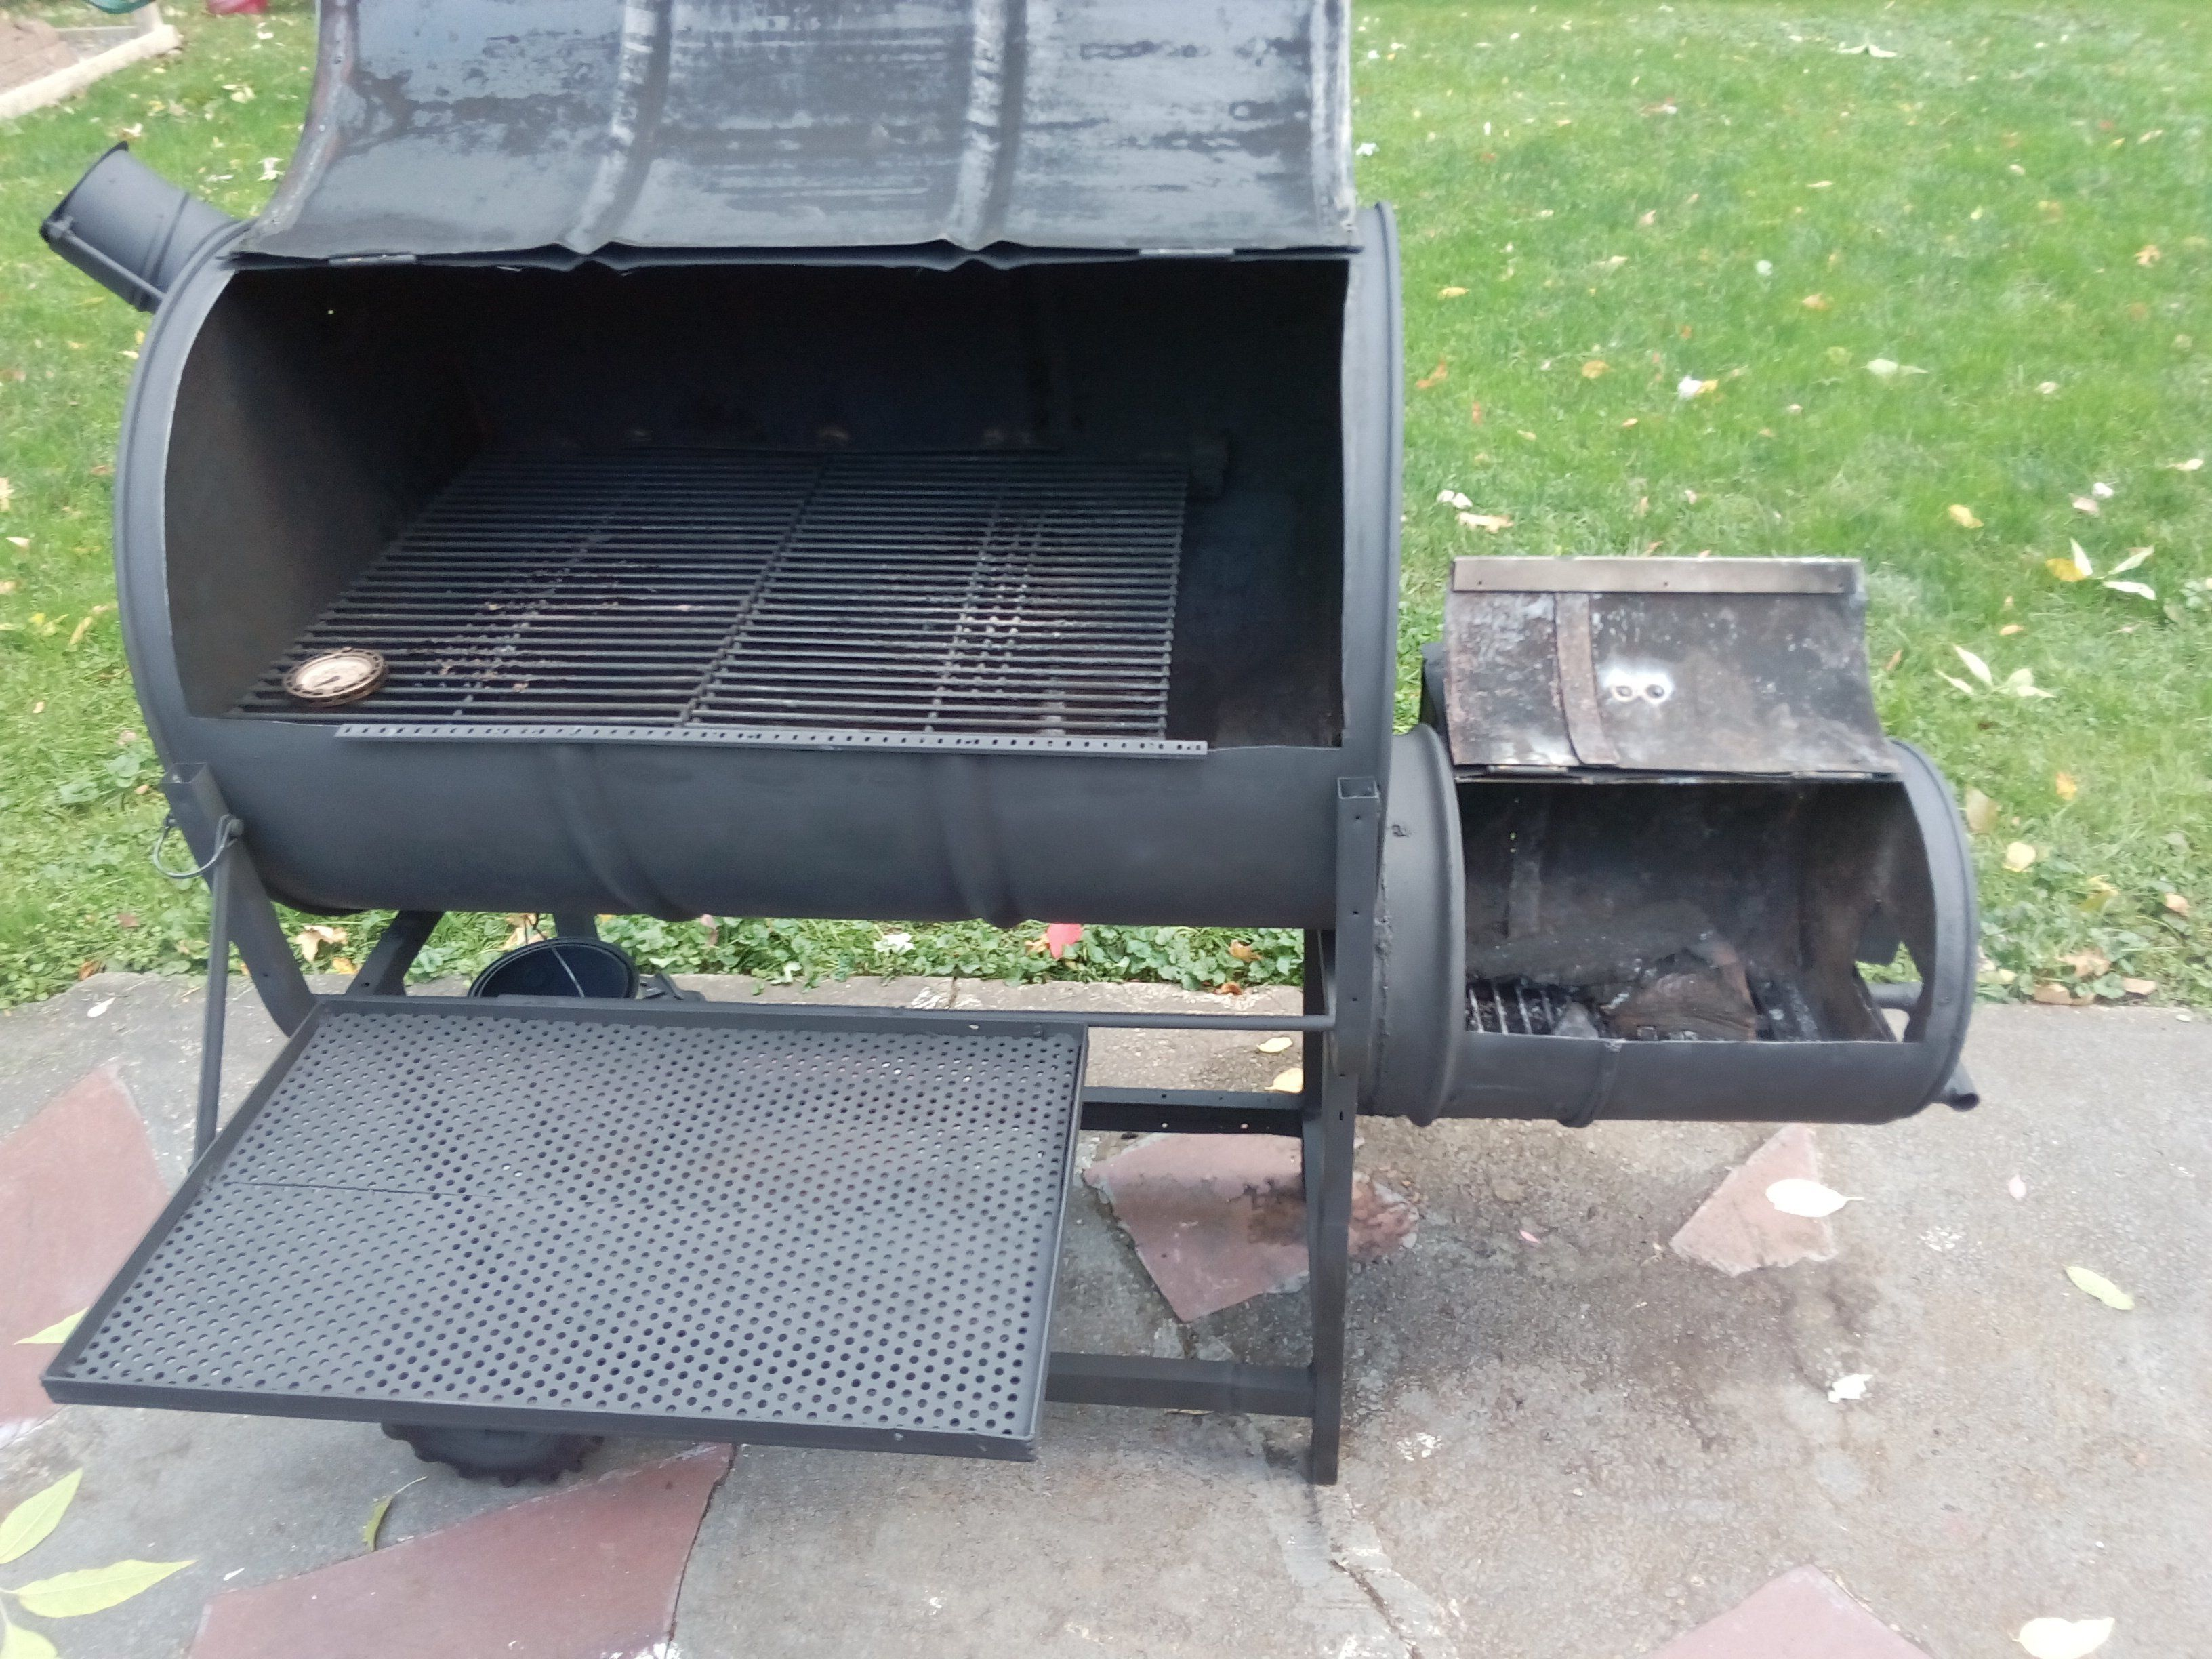 Homemade Offset Smoker Grill Finished Result Minus Thermometers Which Are In The Mail Offset Smoker Grill Smoker Smoker